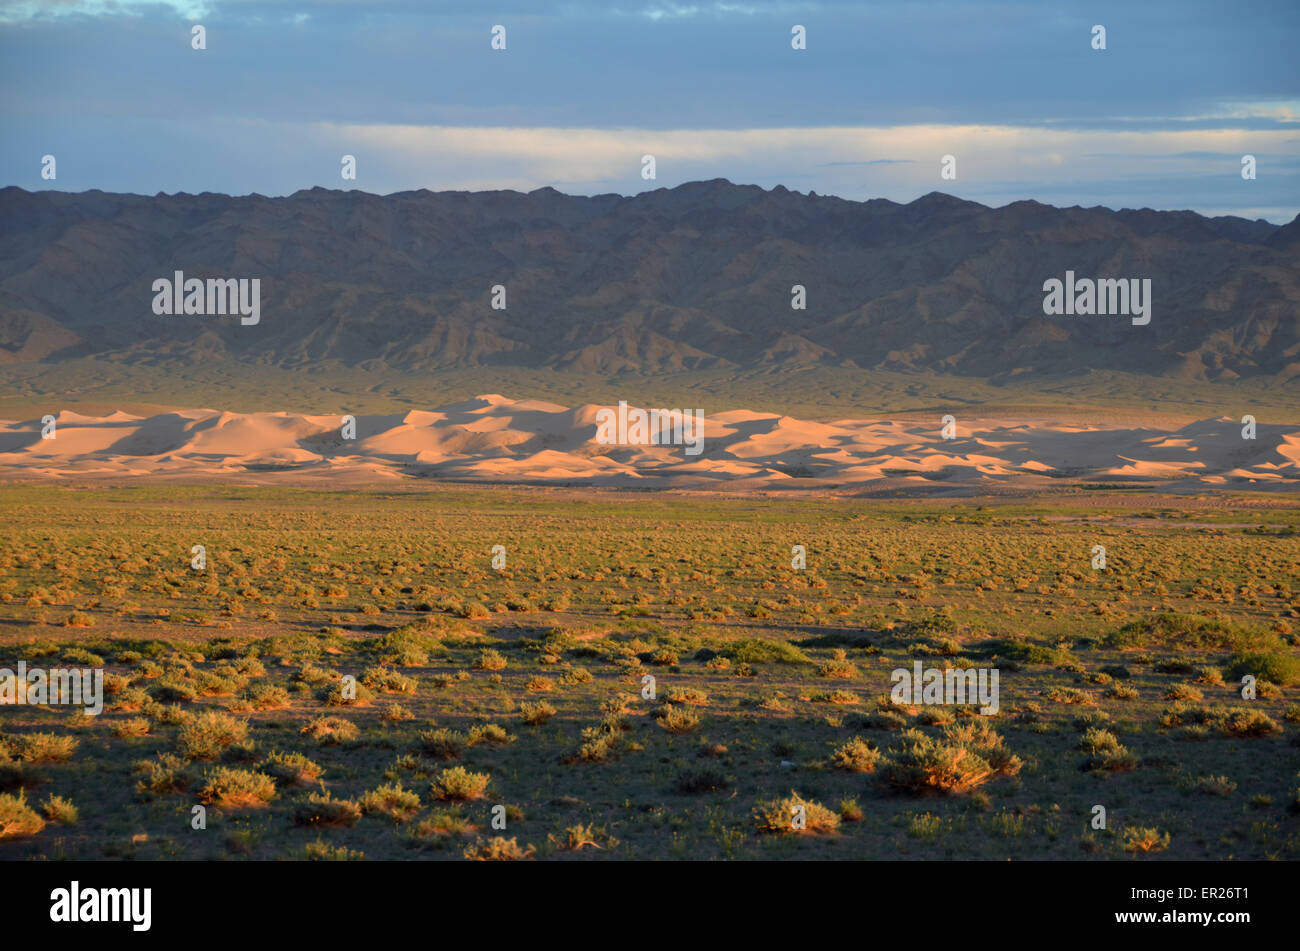 The Khongoryn sand dunes at sunset in the Gobi desert, Omnogovi province, southern Mongolia.lonely, emptyness - Stock Image